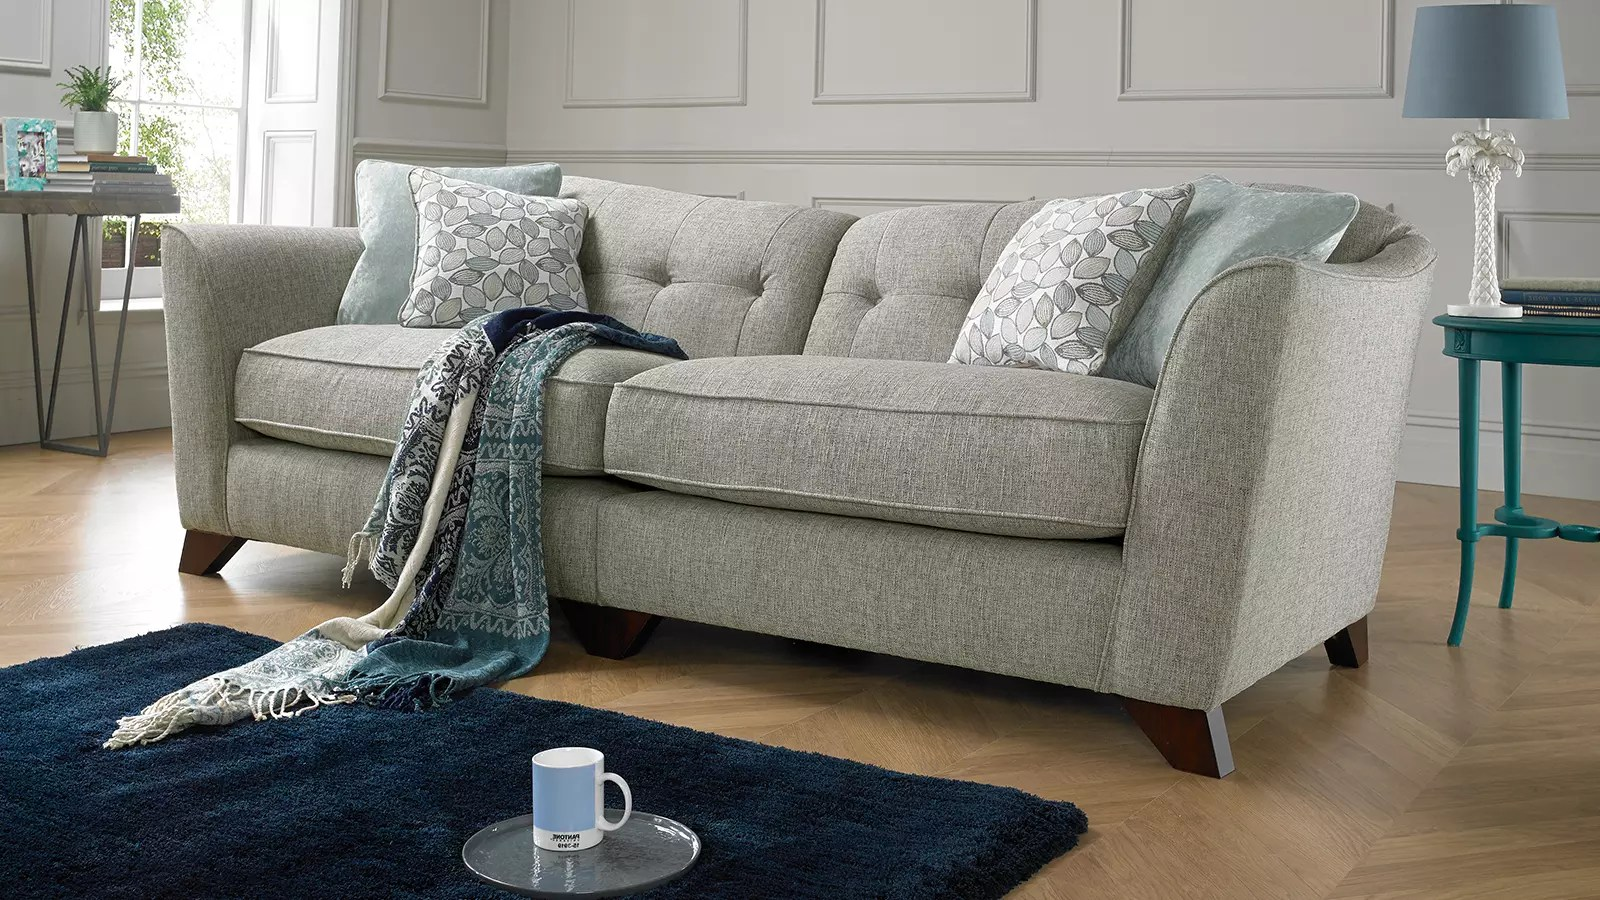 Chesterfield Sofa Online Uk Sofas For Express Delivery In As Little As 14 Days Sofology